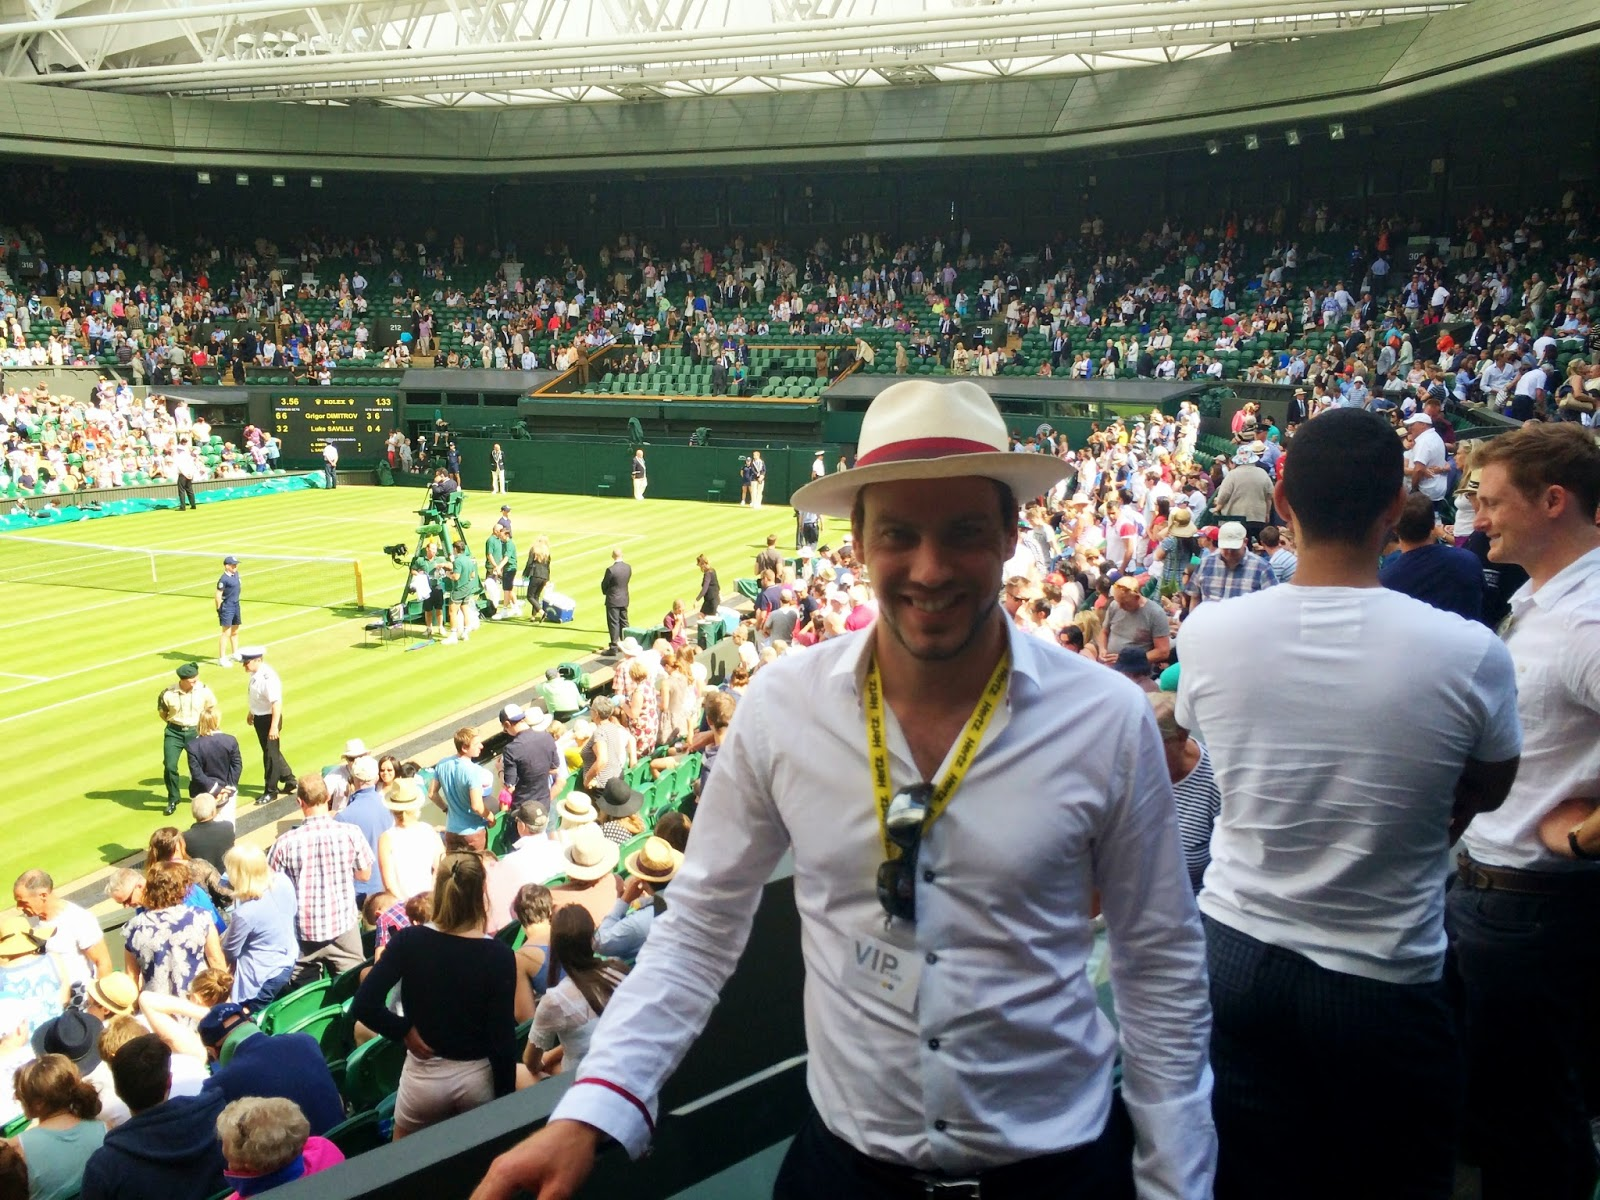 Simon Heyes next to Centre Court, Wimbledon 2014